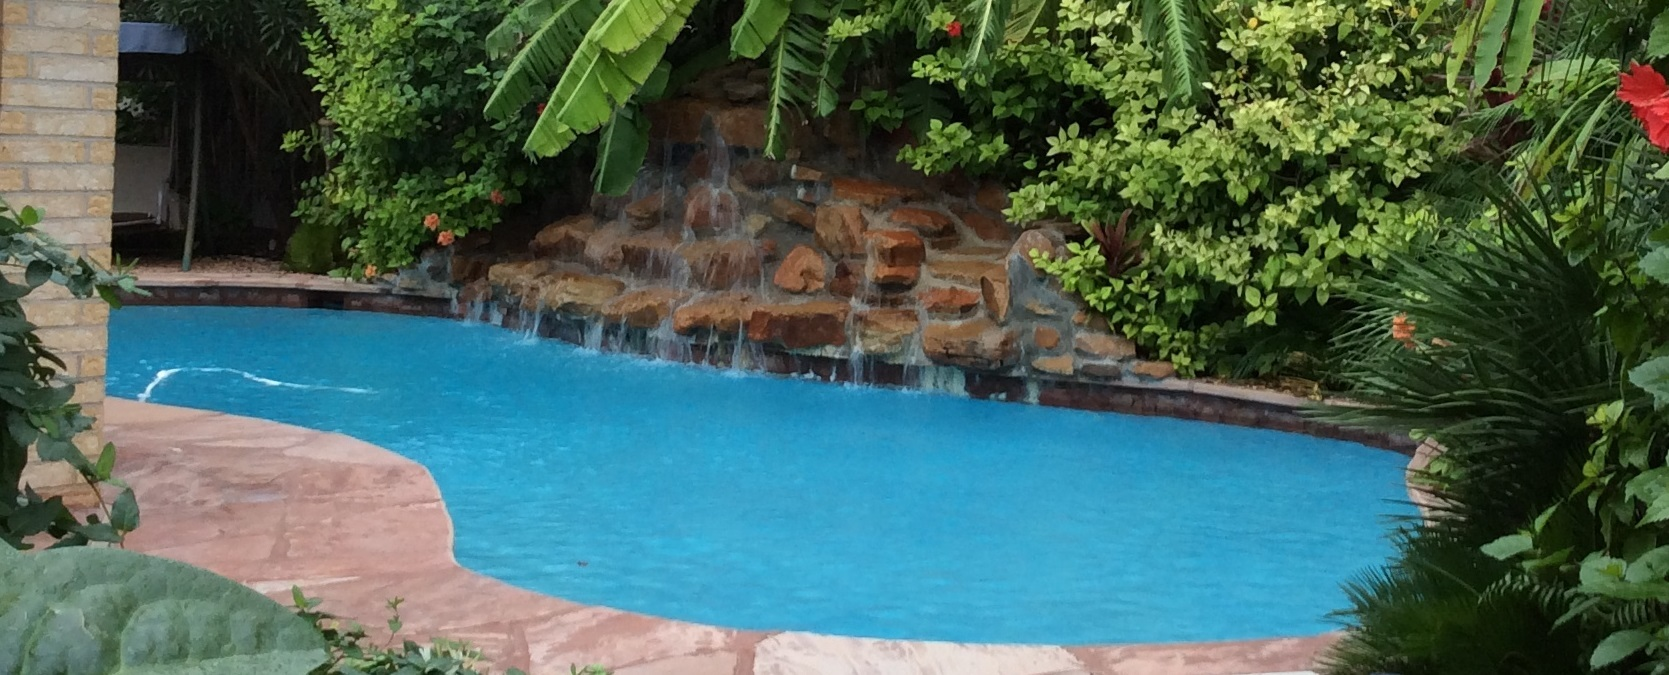 Atlantic pools in mcallen tx swimming pool contractors for Swimming pool dealers